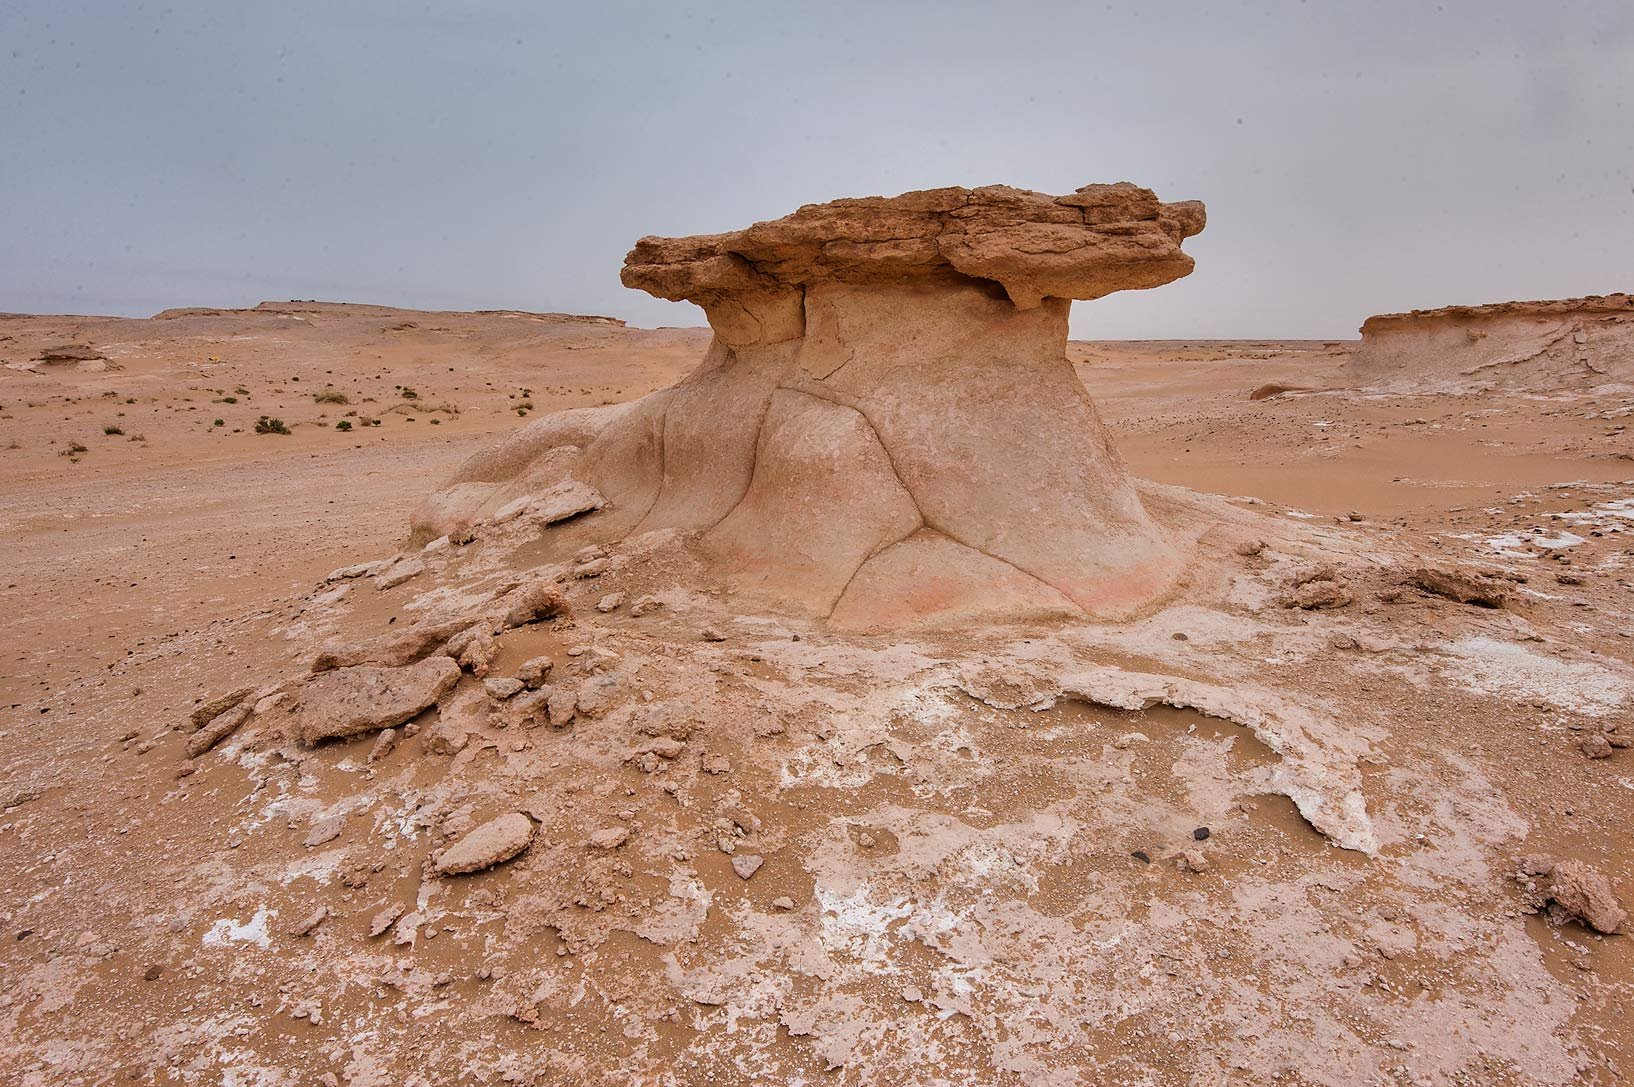 Limestone mushroom formation in area of Nakhsh Mountain near Salwa Rd. in southern Qatar